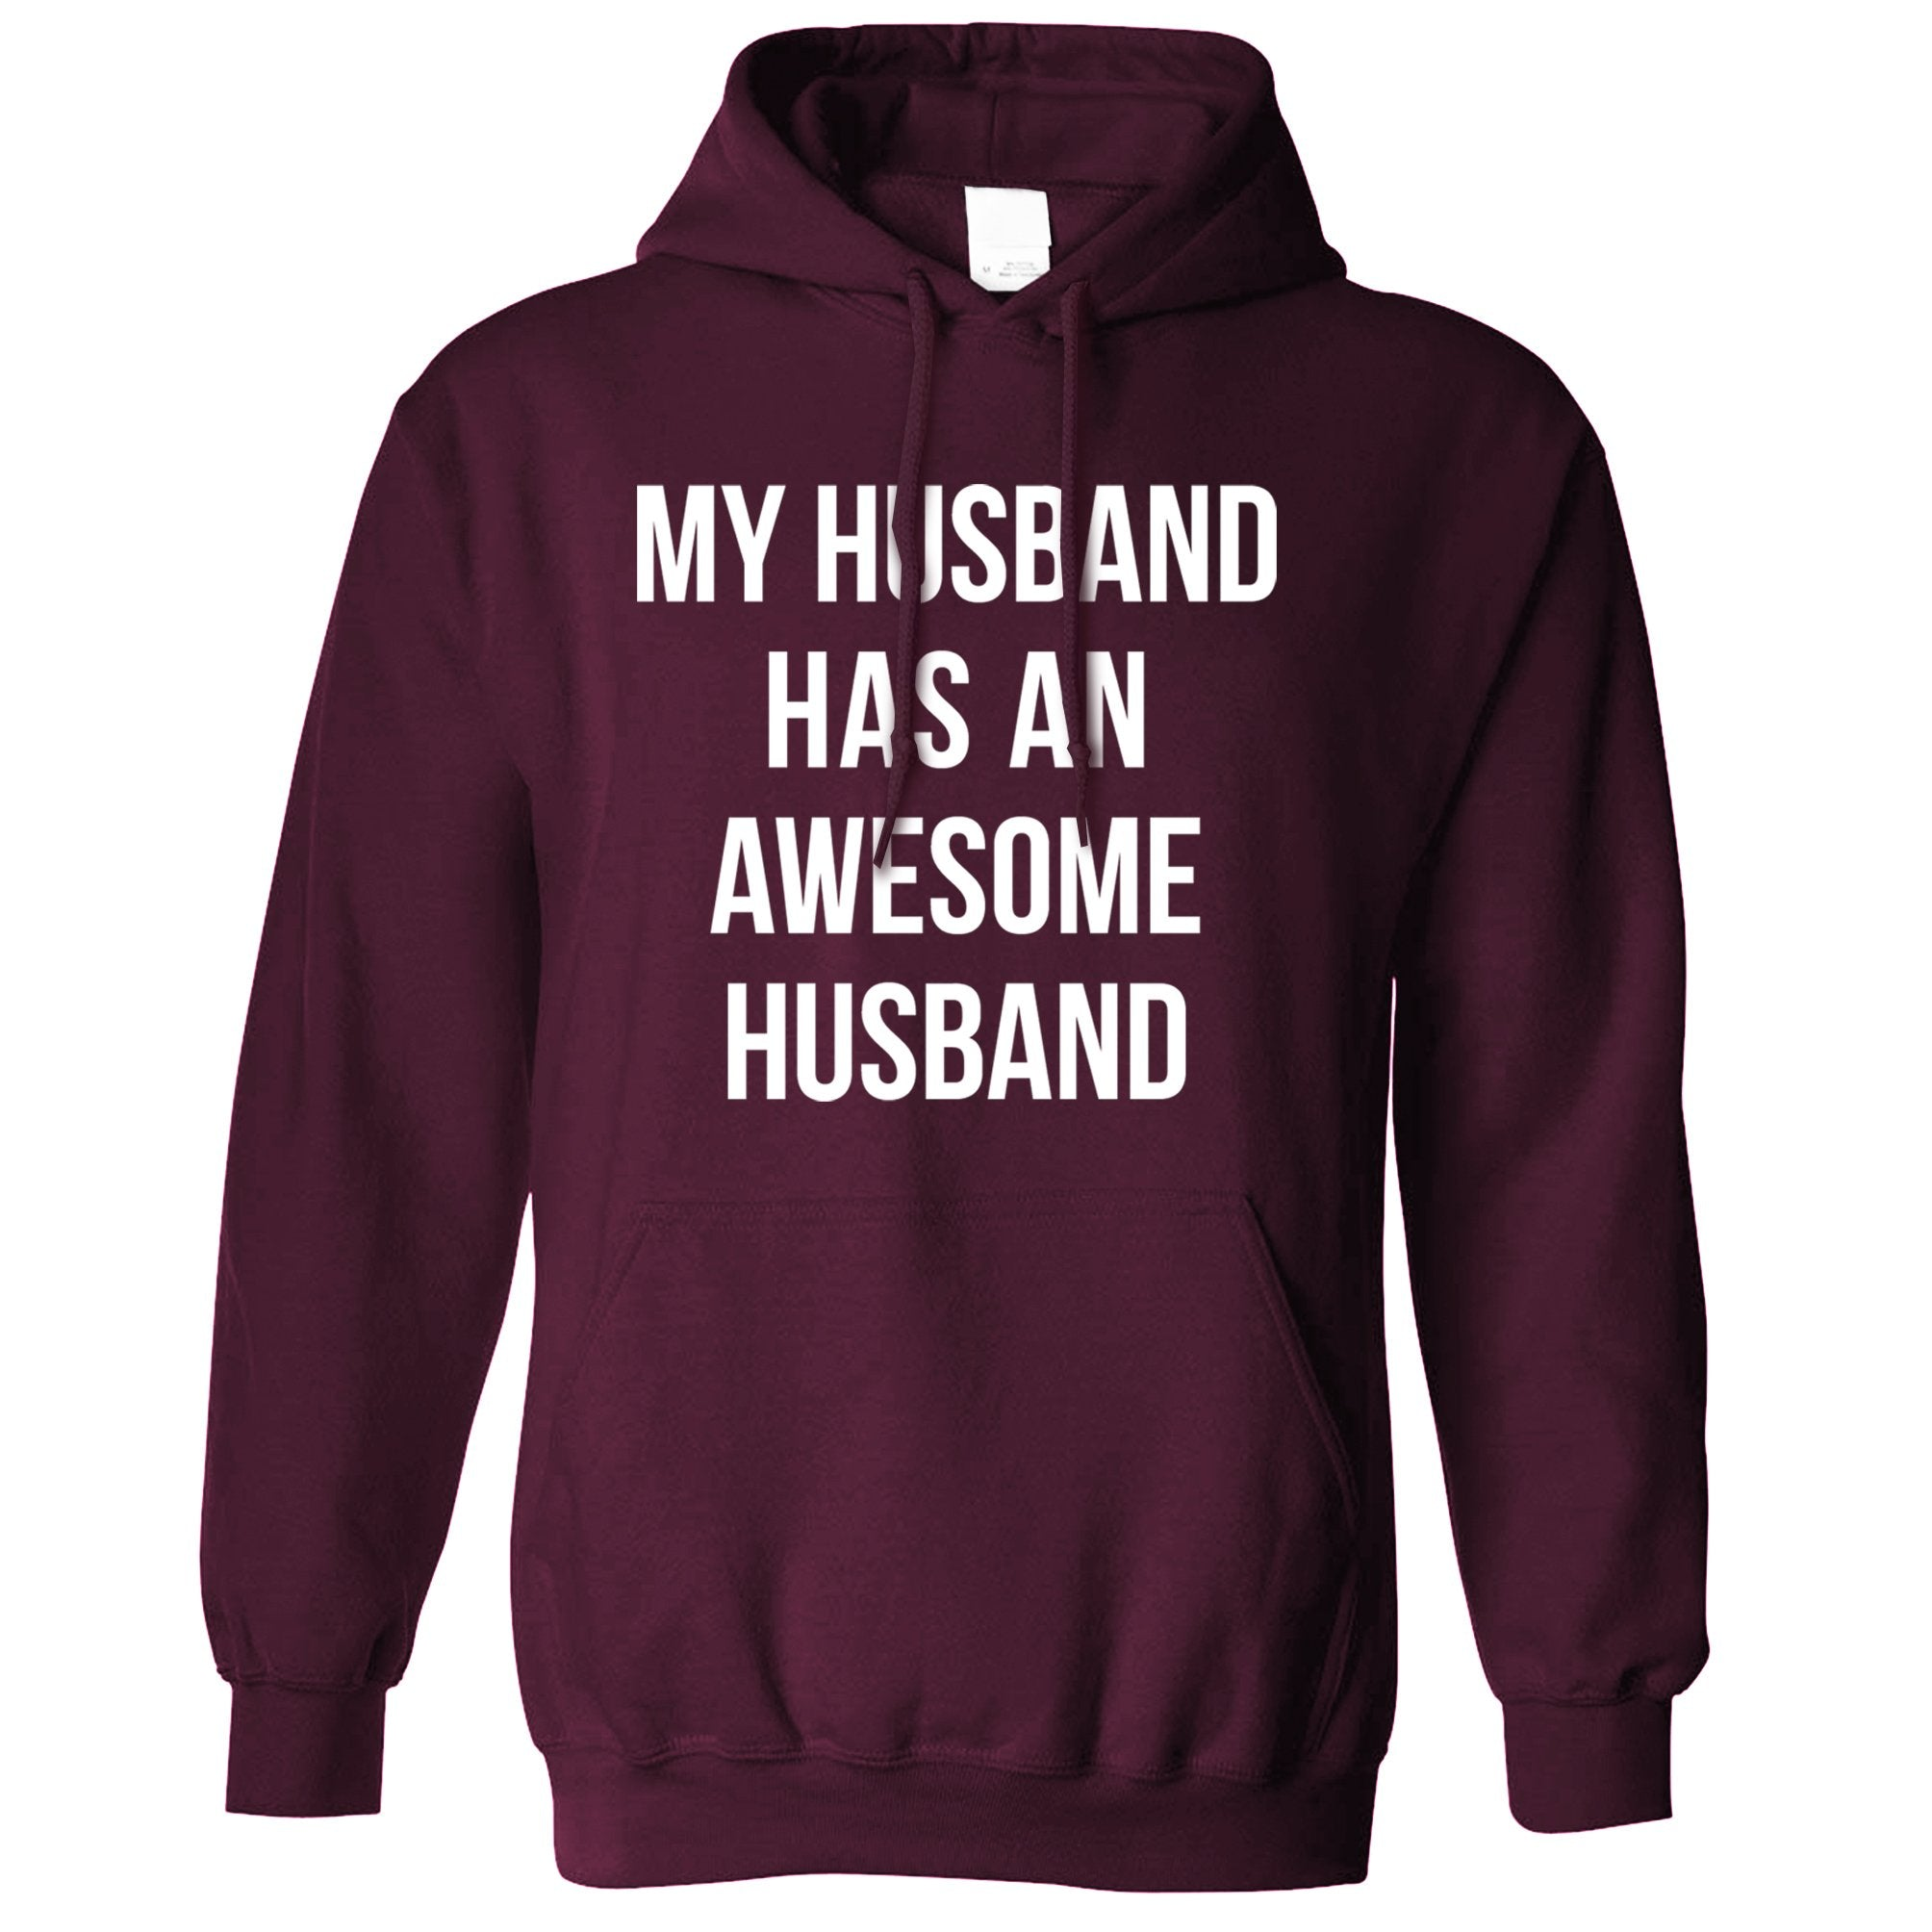 Joke Couples Hoodie My Husband Has An Awesome Husband Hooded Jumper